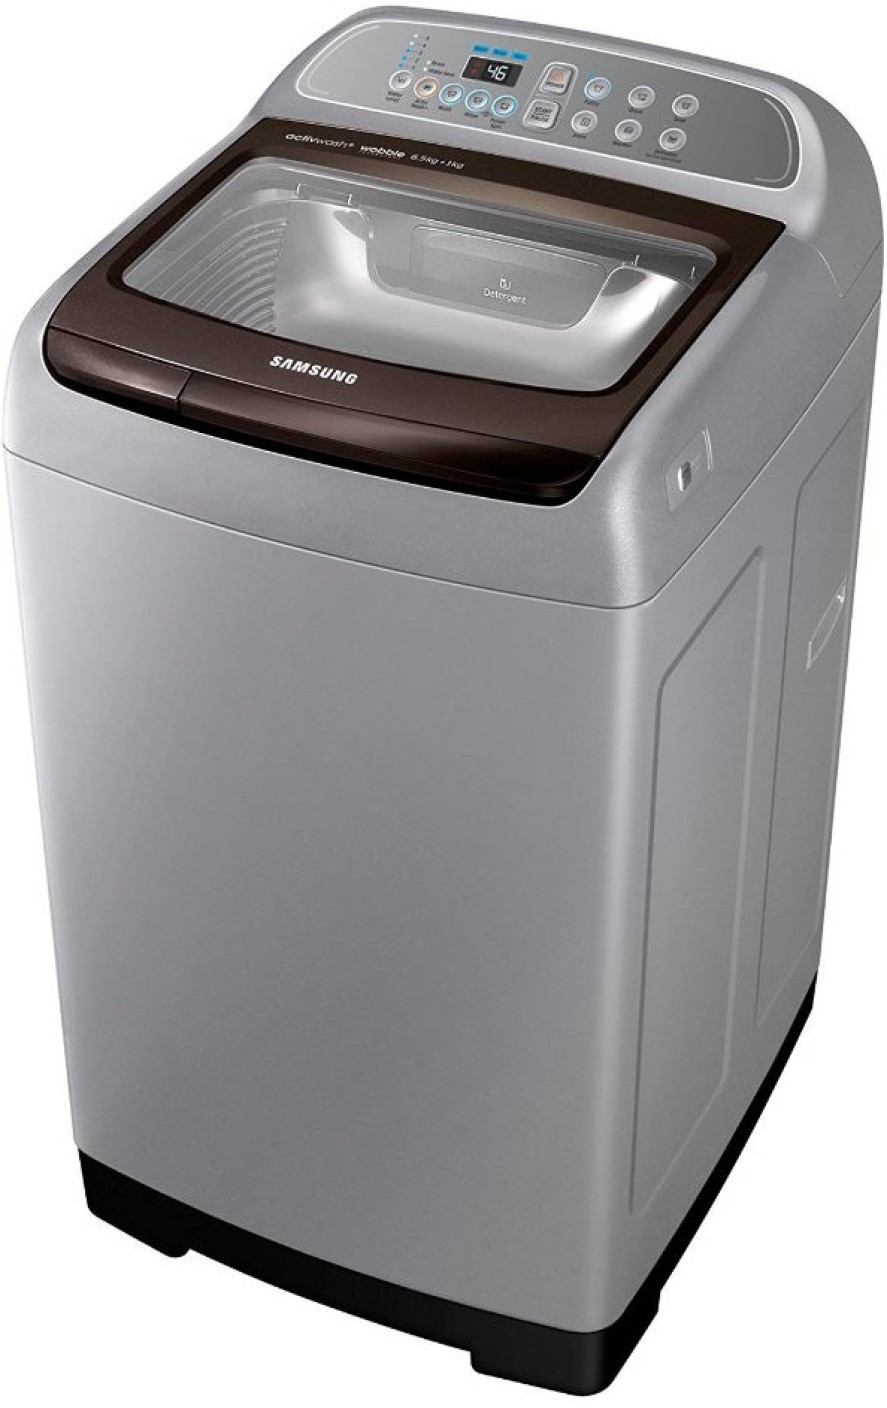 Samsung 6.5 kg Fully Automatic Top Load Washing Machine ...